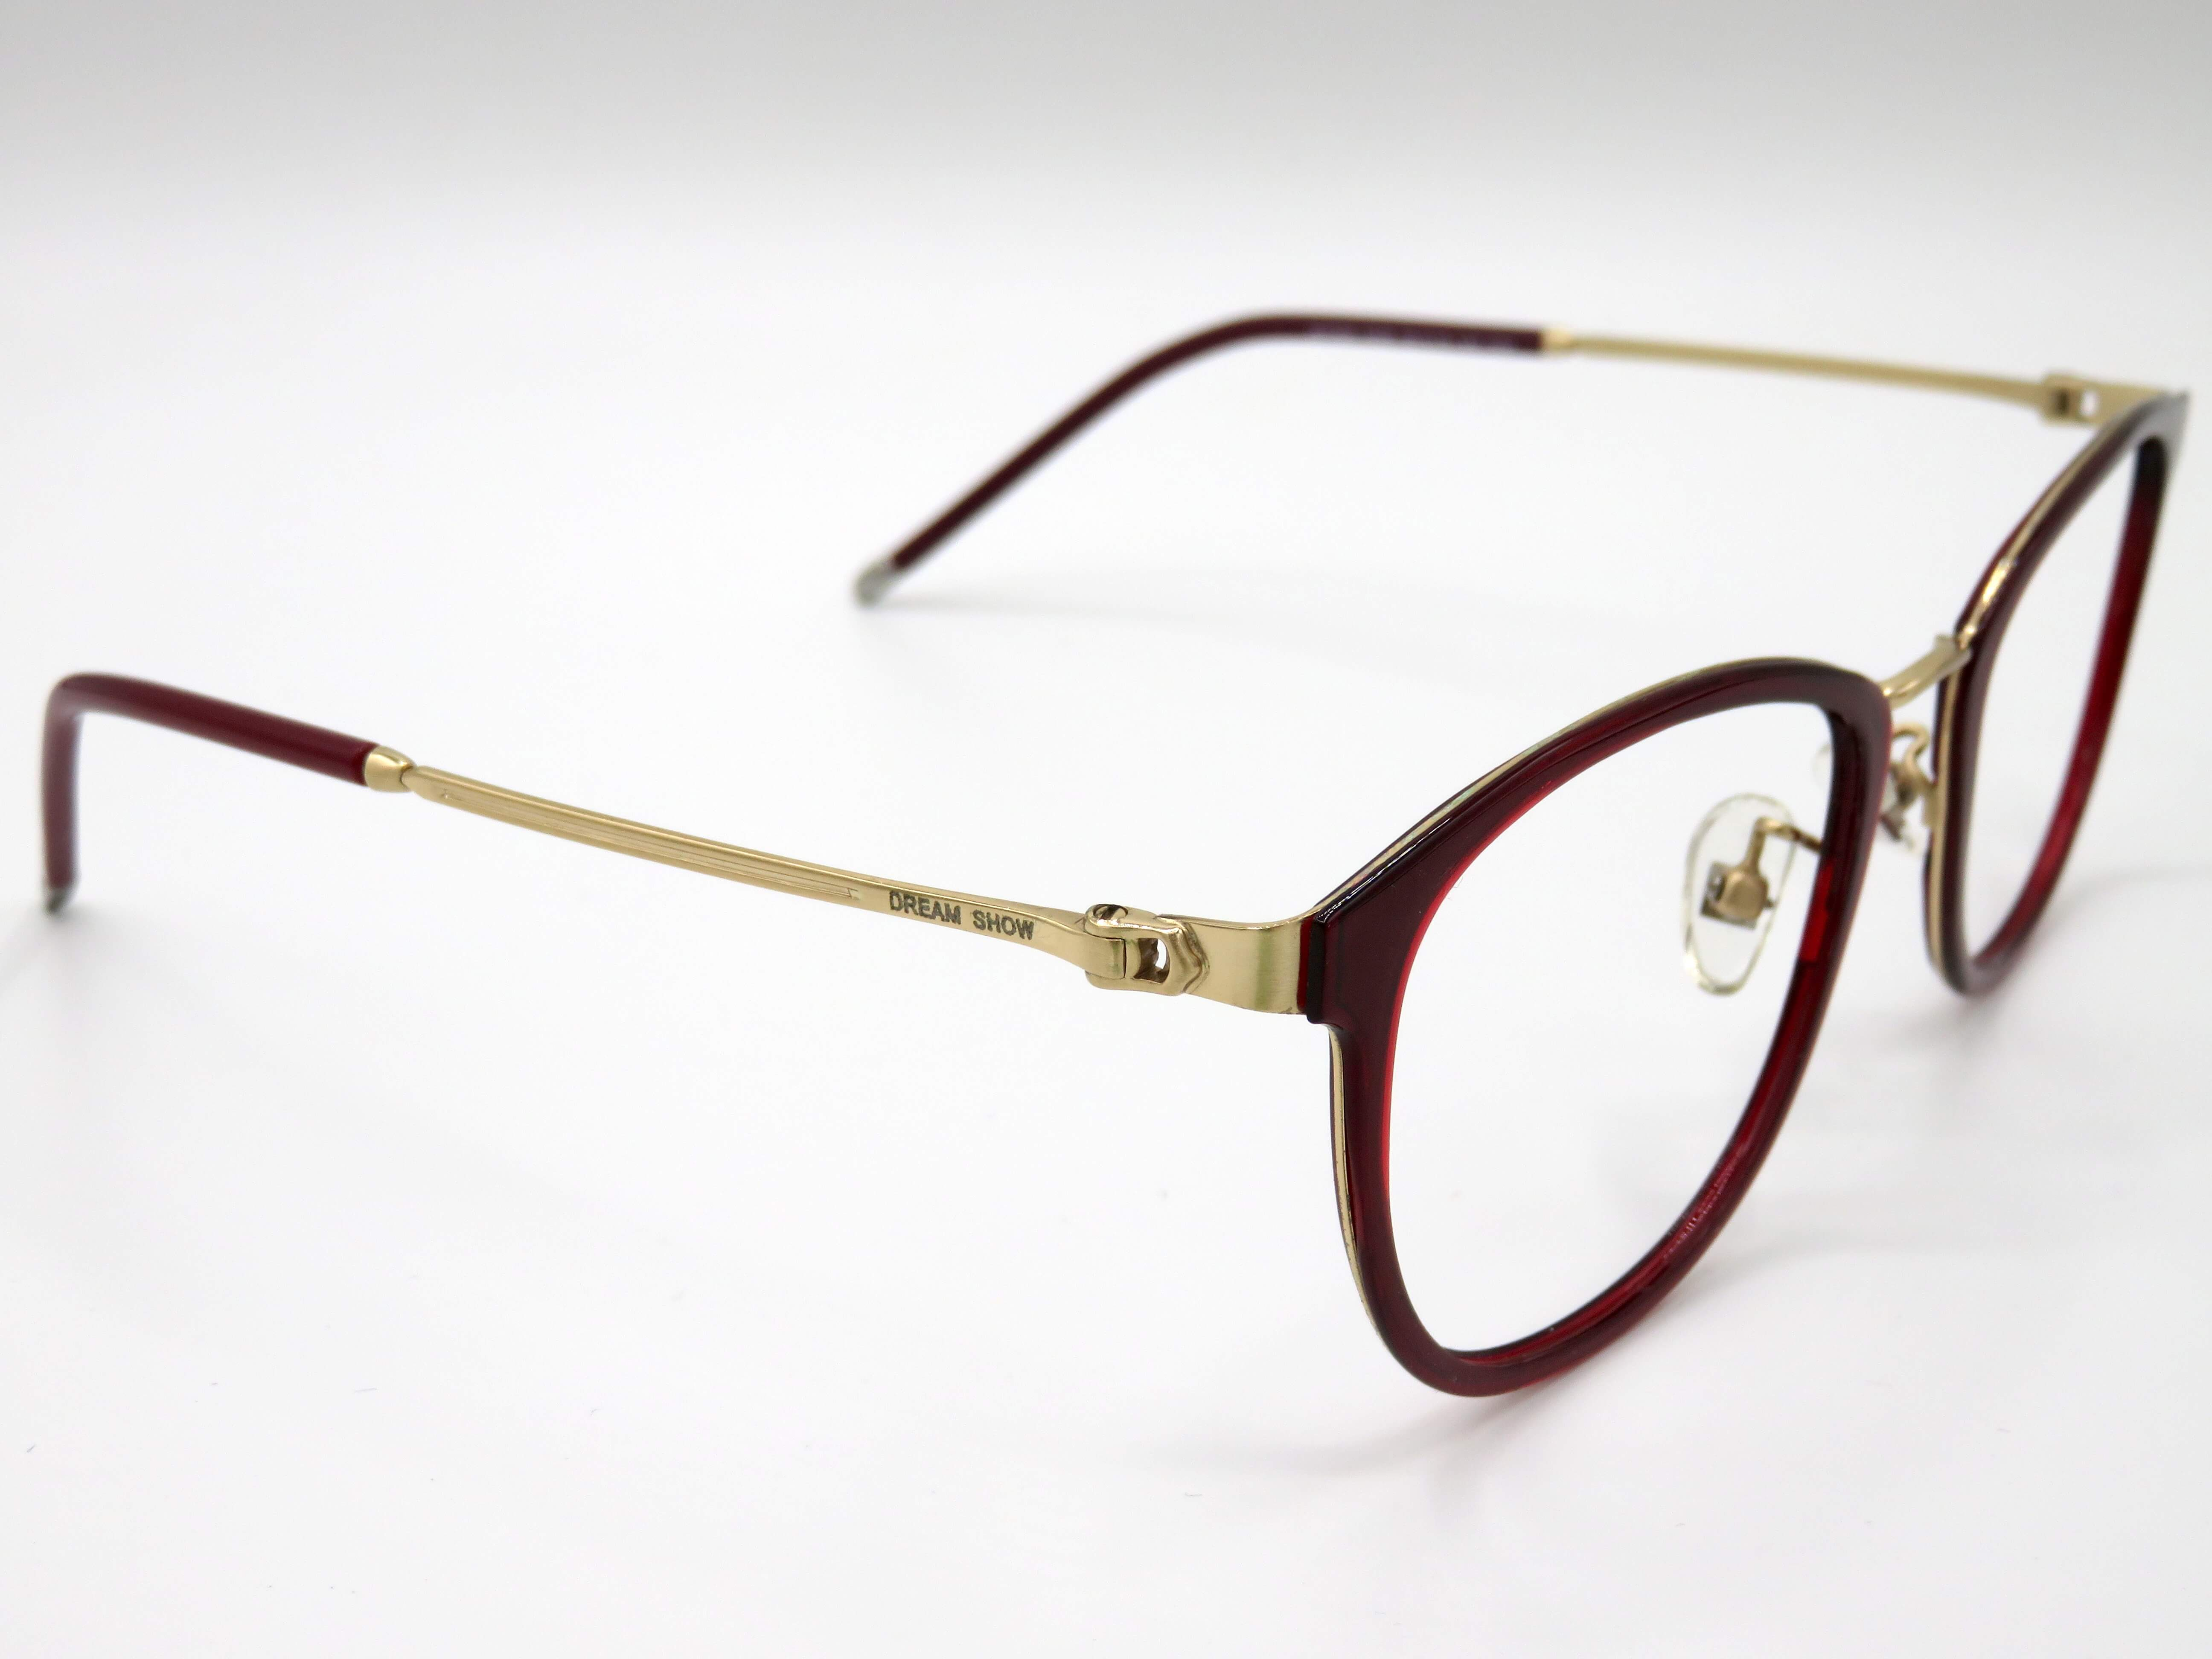 Lesebrille, Mod. Dream, rot/gold